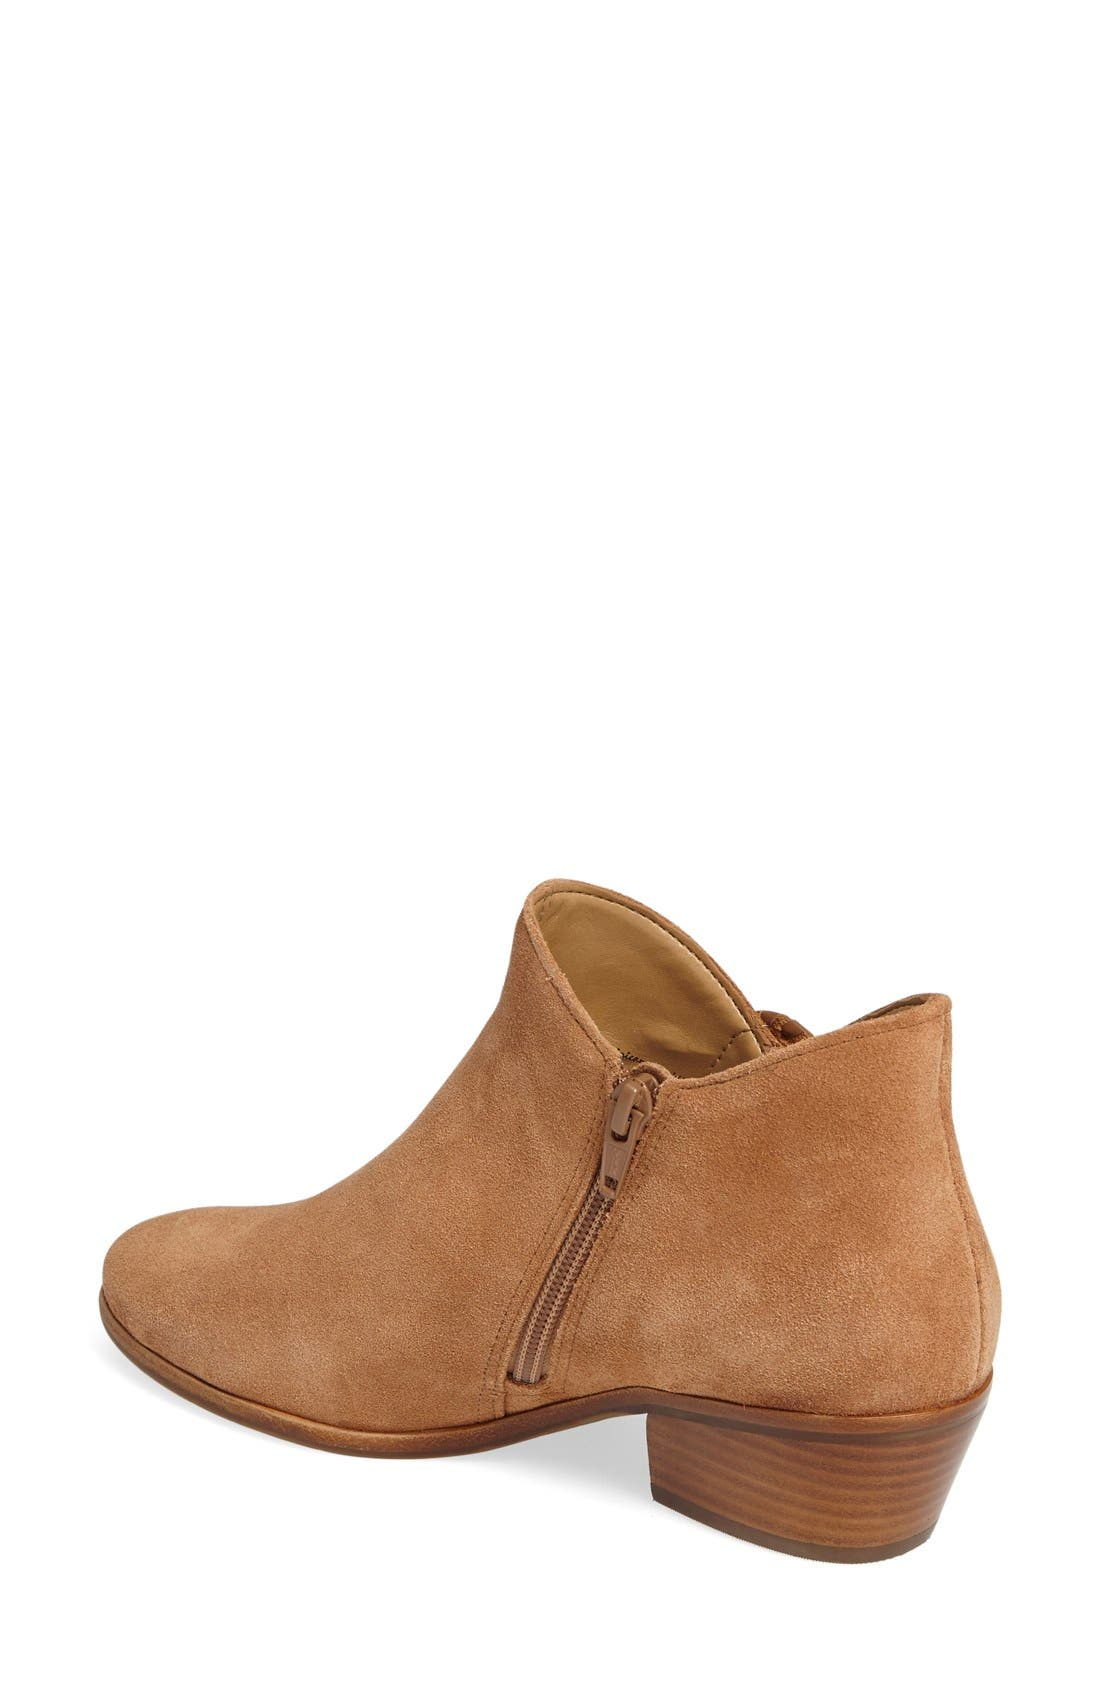 Peyton Bootie,                             Alternate thumbnail 2, color,                             Oak Suede